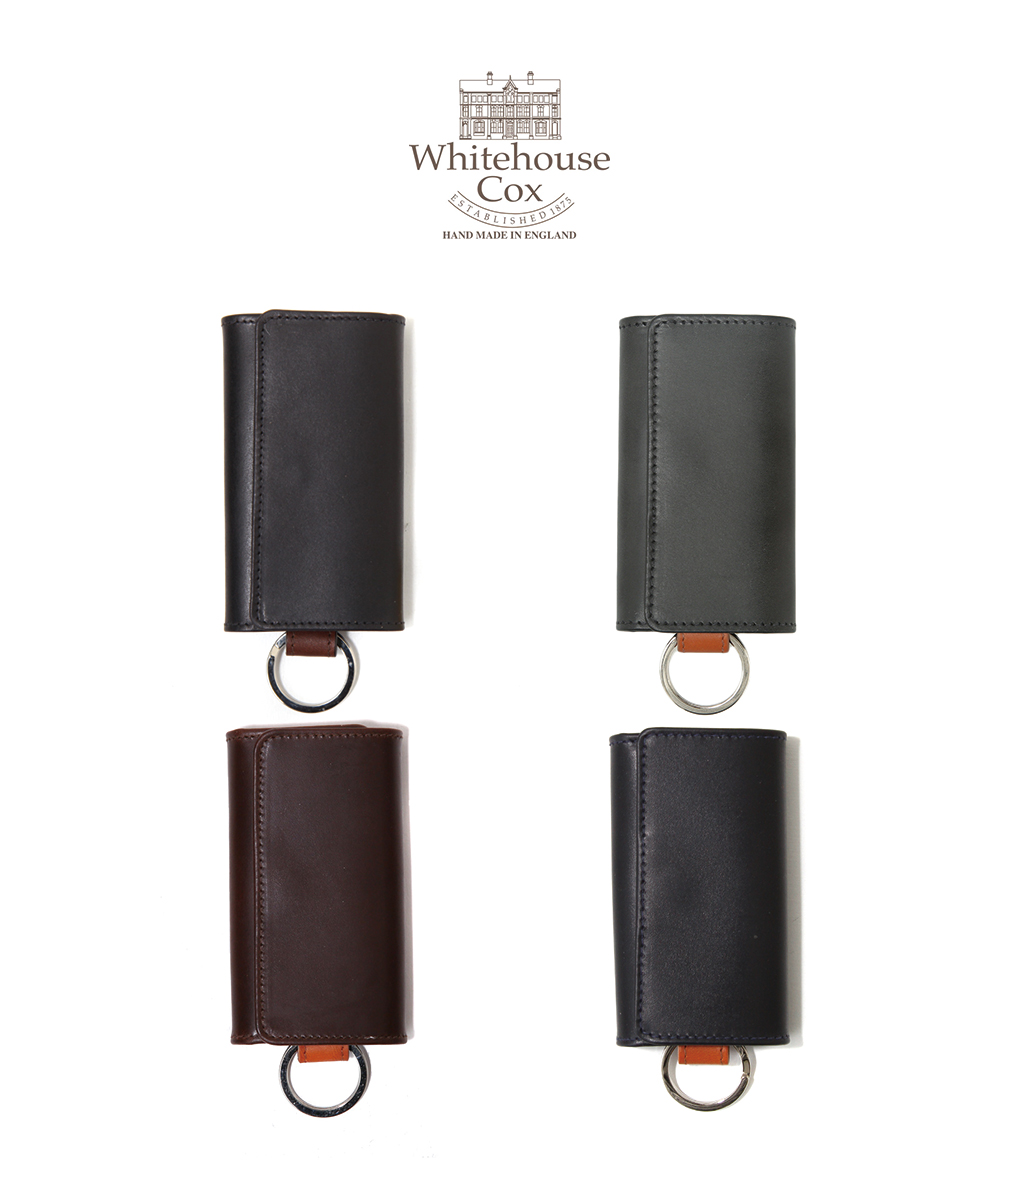 Whitehouse Cox / ホワイトハウスコックス : KEY CASE DERBY COLLECTION / 全4色 :ホワイトハウス ダービー 馬革 キーケース 鍵 museダービー メンズ : S-9692-DERBY【MUS】